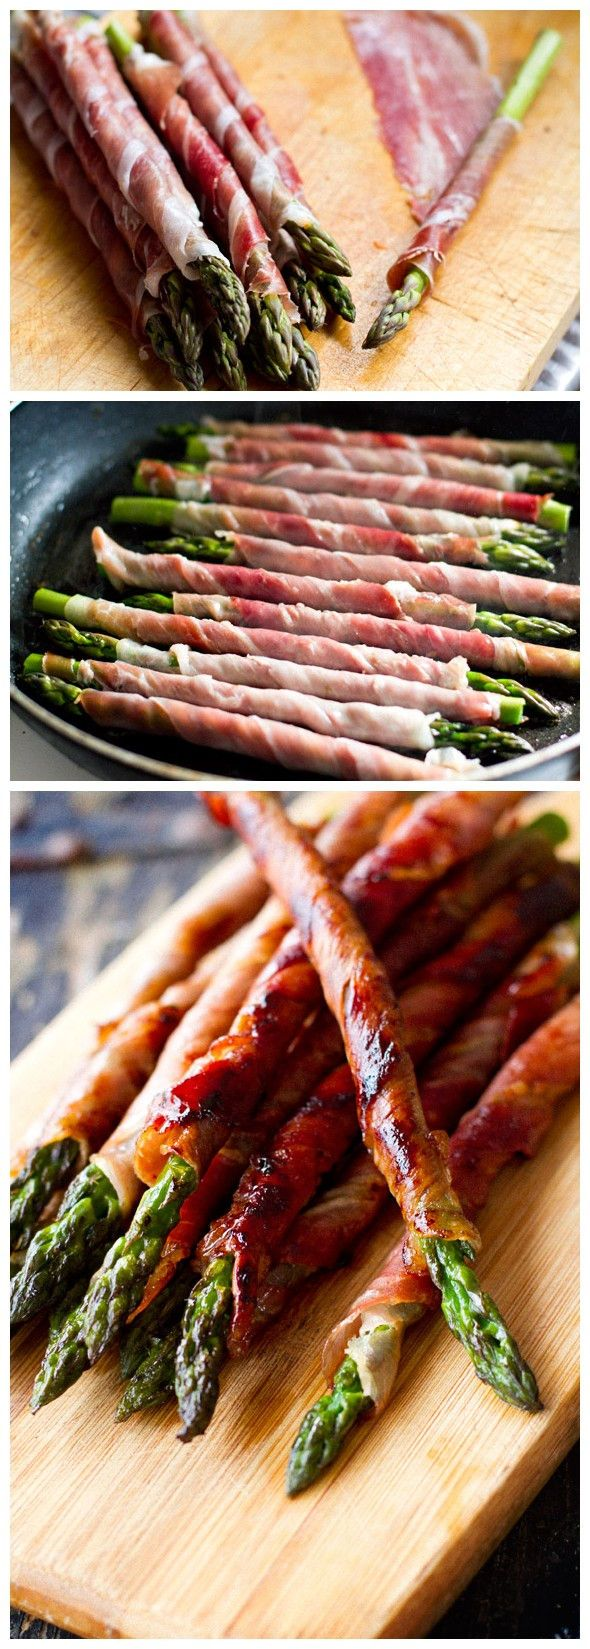 Prosciutto Wrapped Asparagus Great Poitiers too